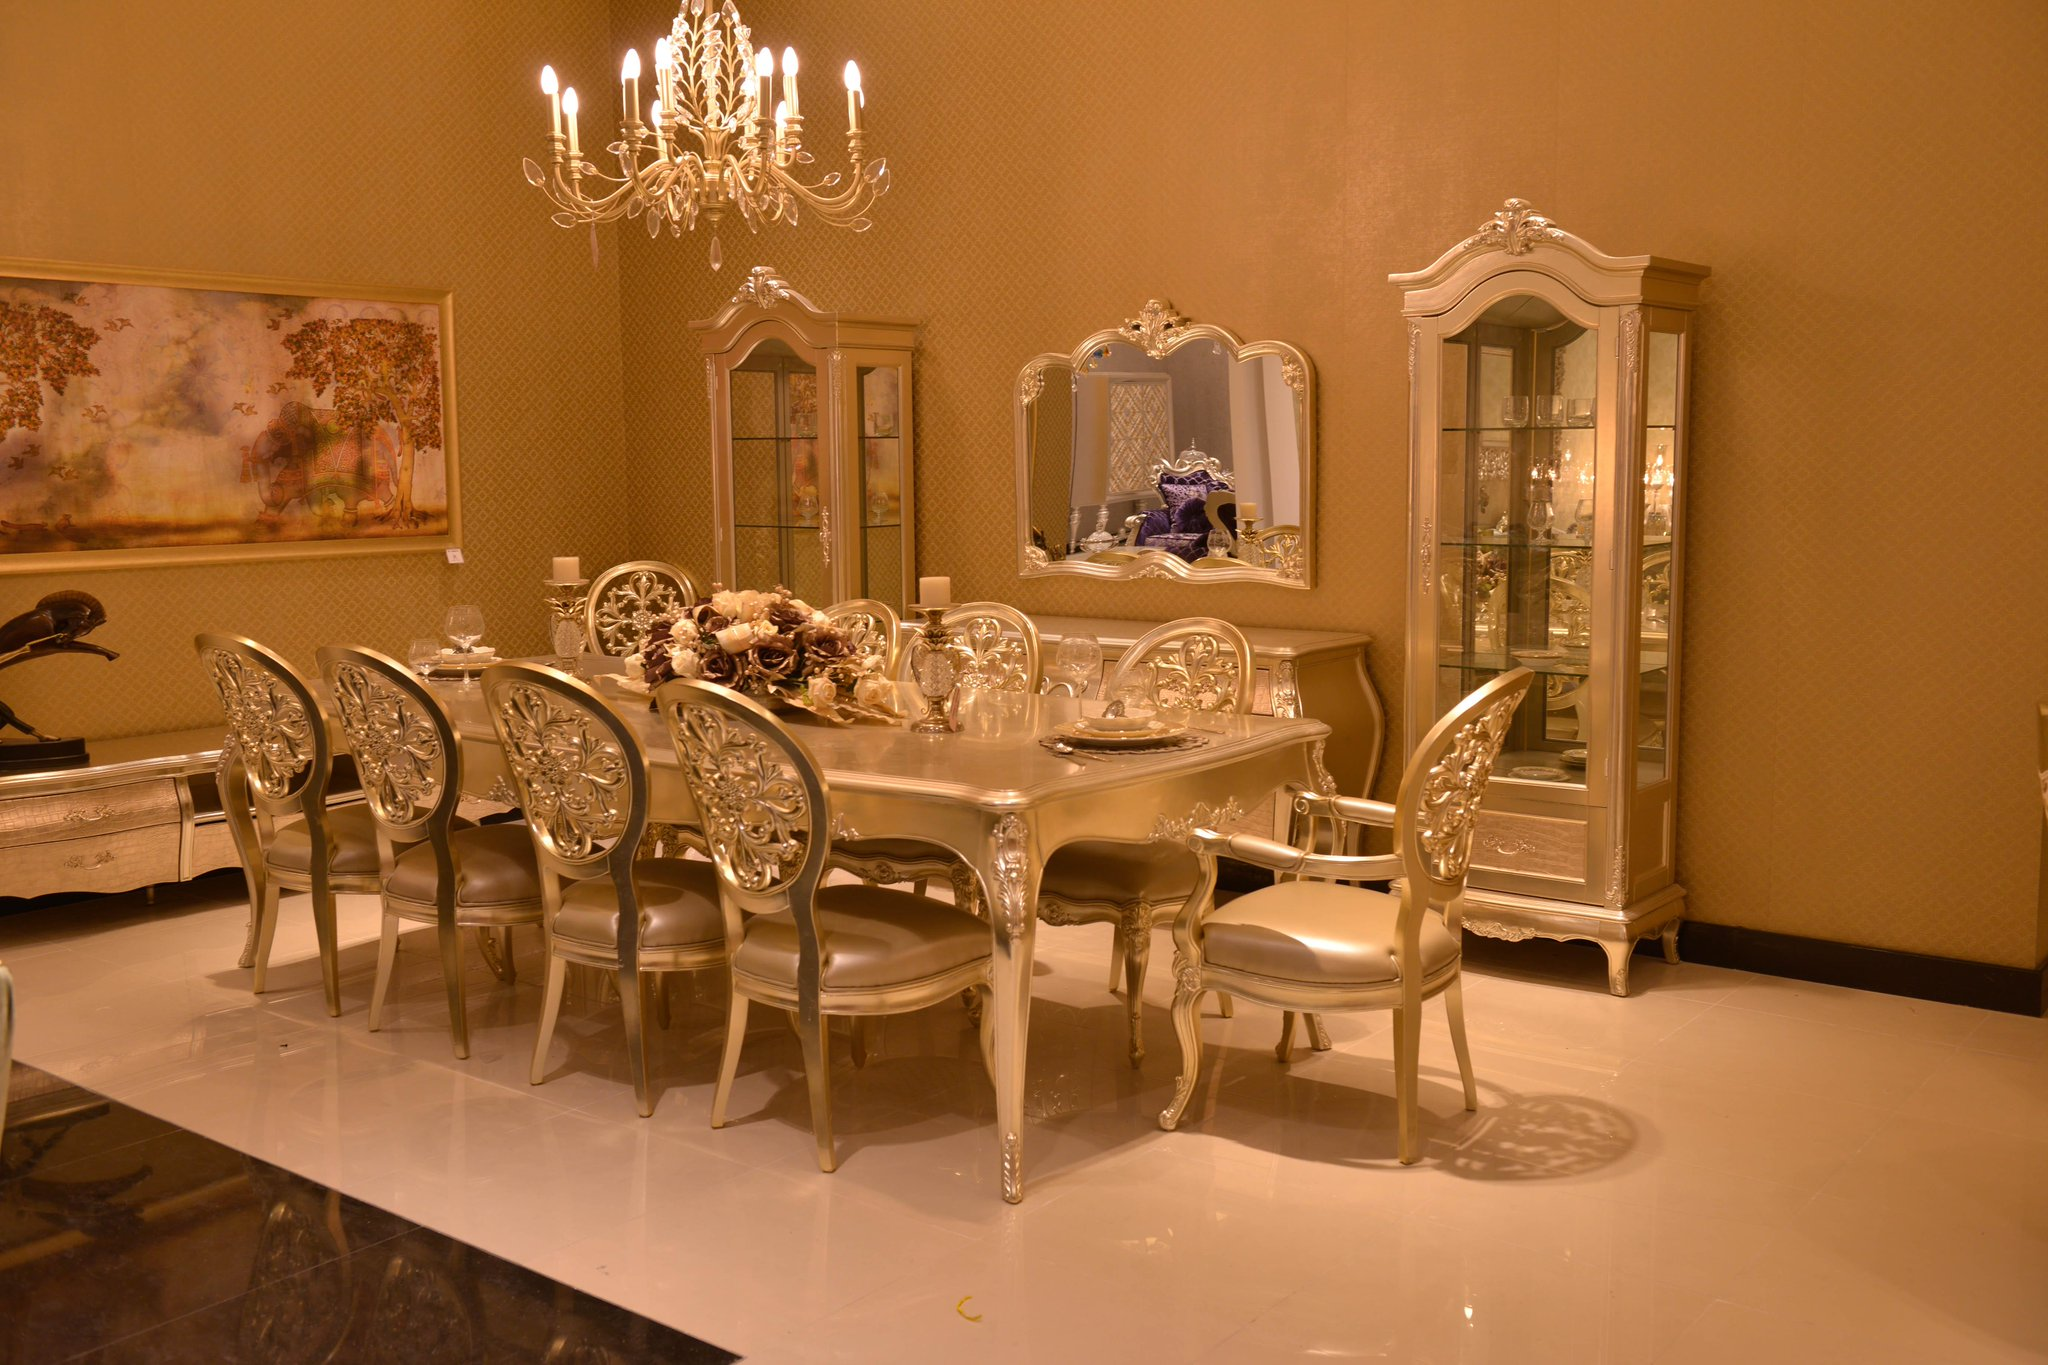 Al Huzaifa Furniture On Twitter Need Some Interior Styling Inspiration Visit Our Showrooms In